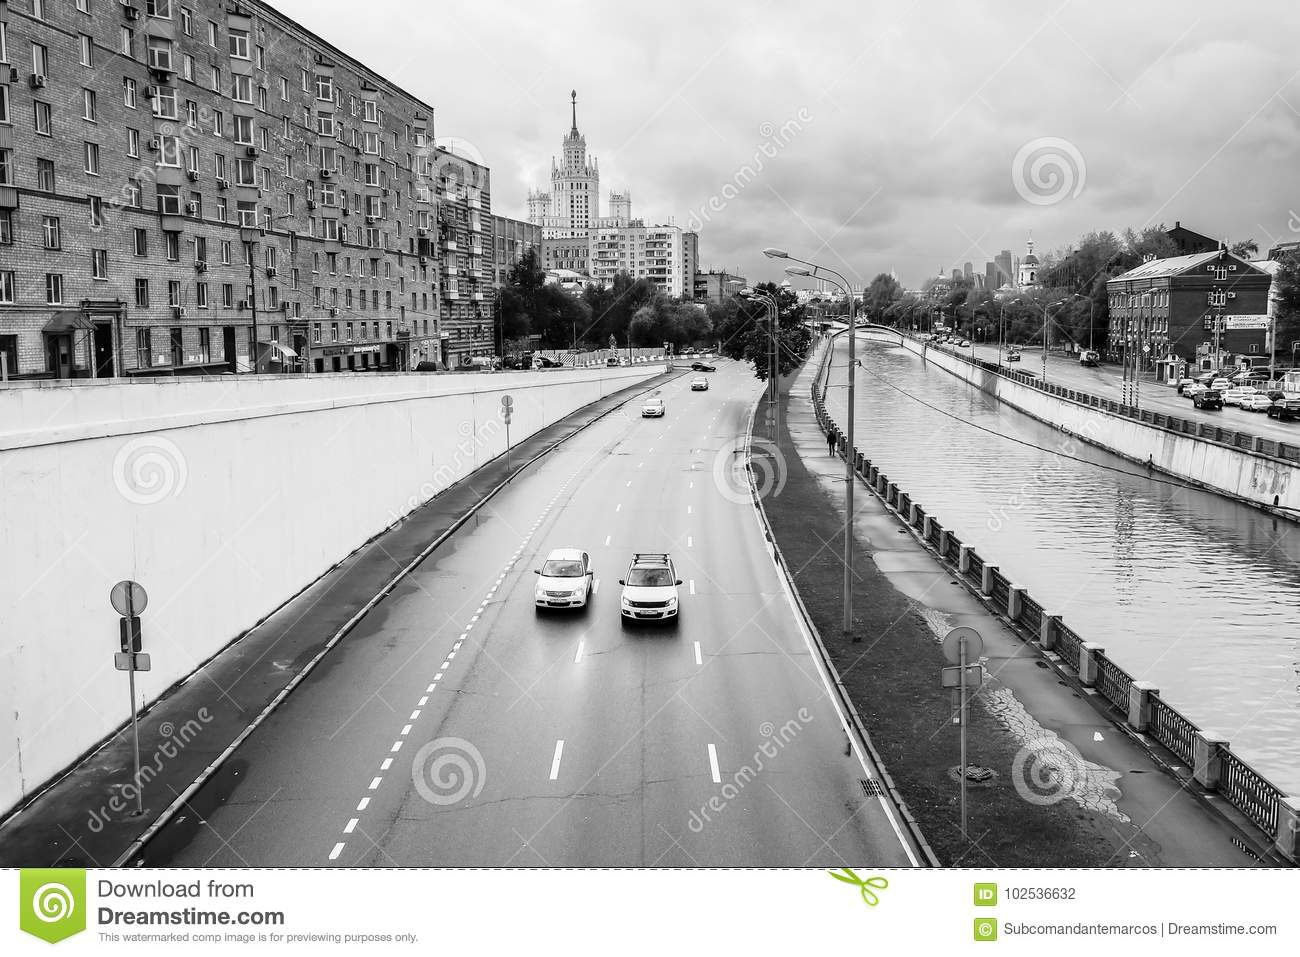 Monochrome urban landscape. View of the river Yauza and its embankments on rainy day, Moscow, Russia.